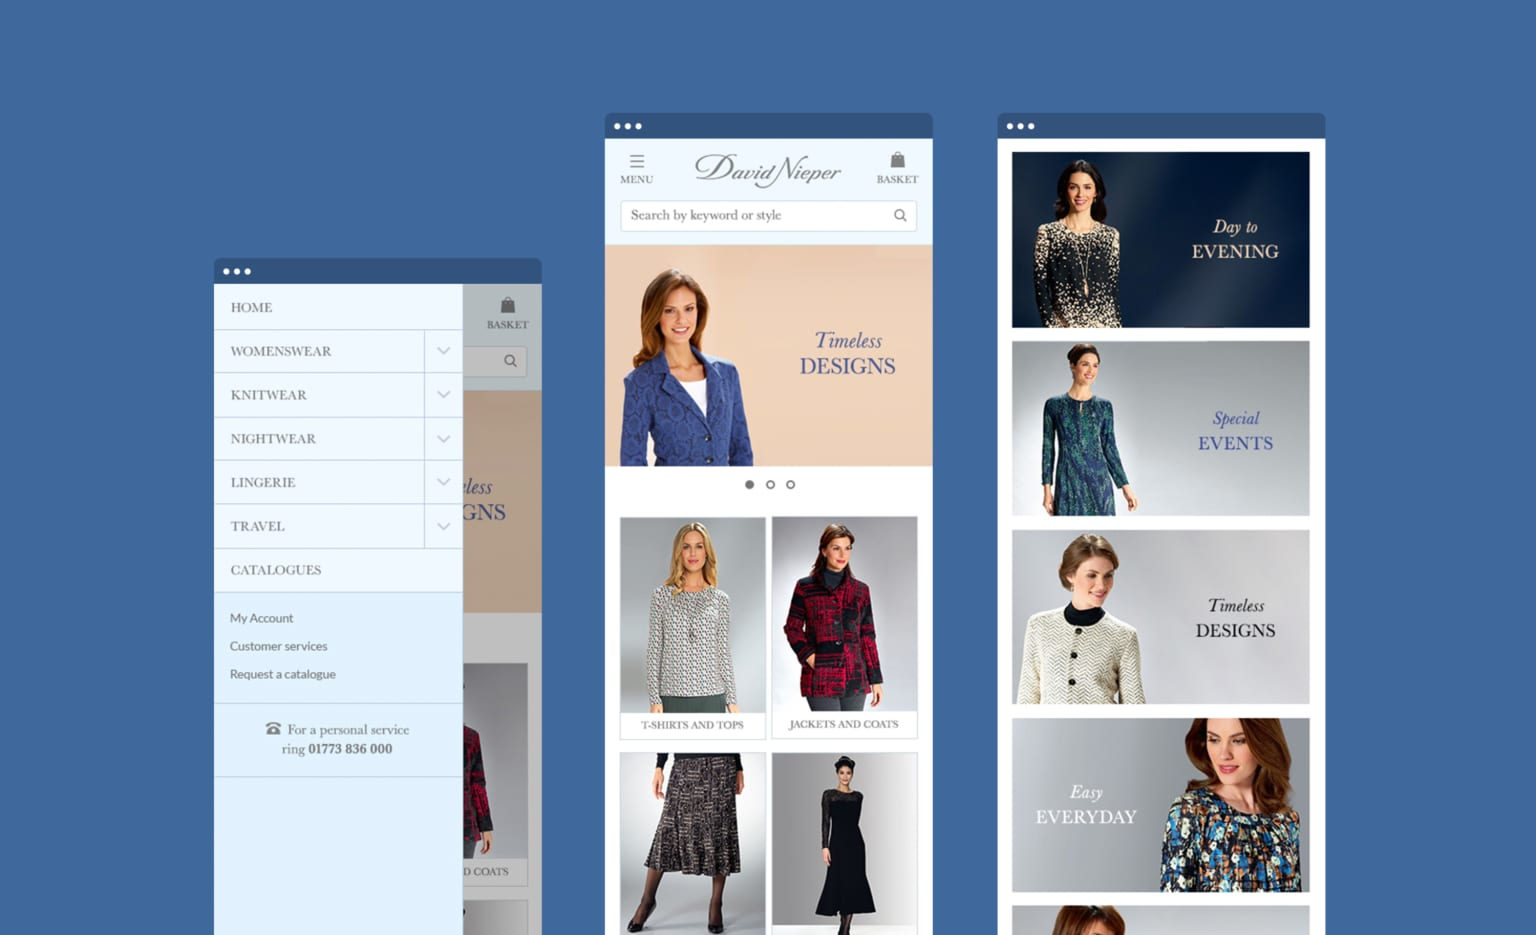 eCommerce design consultancy for fine fashion made in England